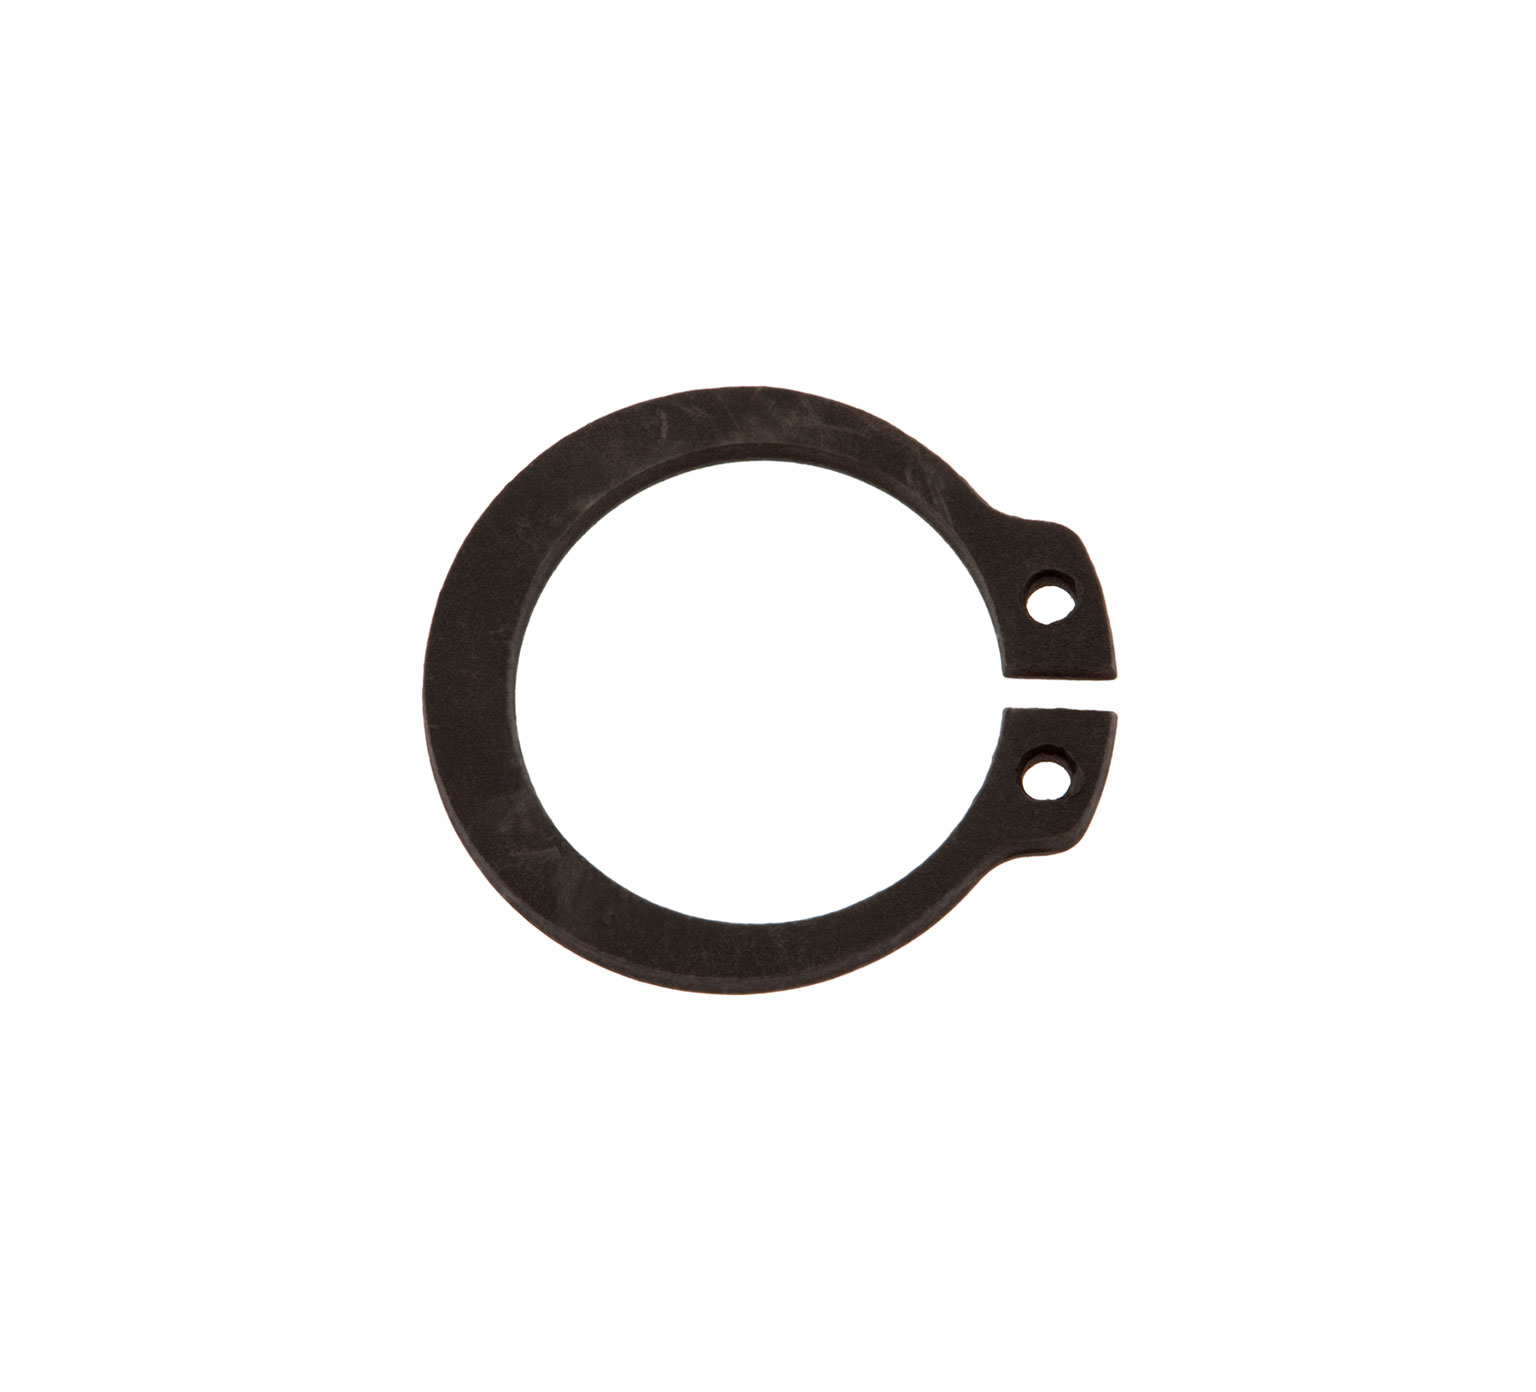 33373 Carbon Steel Retaining Ring - 0.62 x 0.05 in alt 1